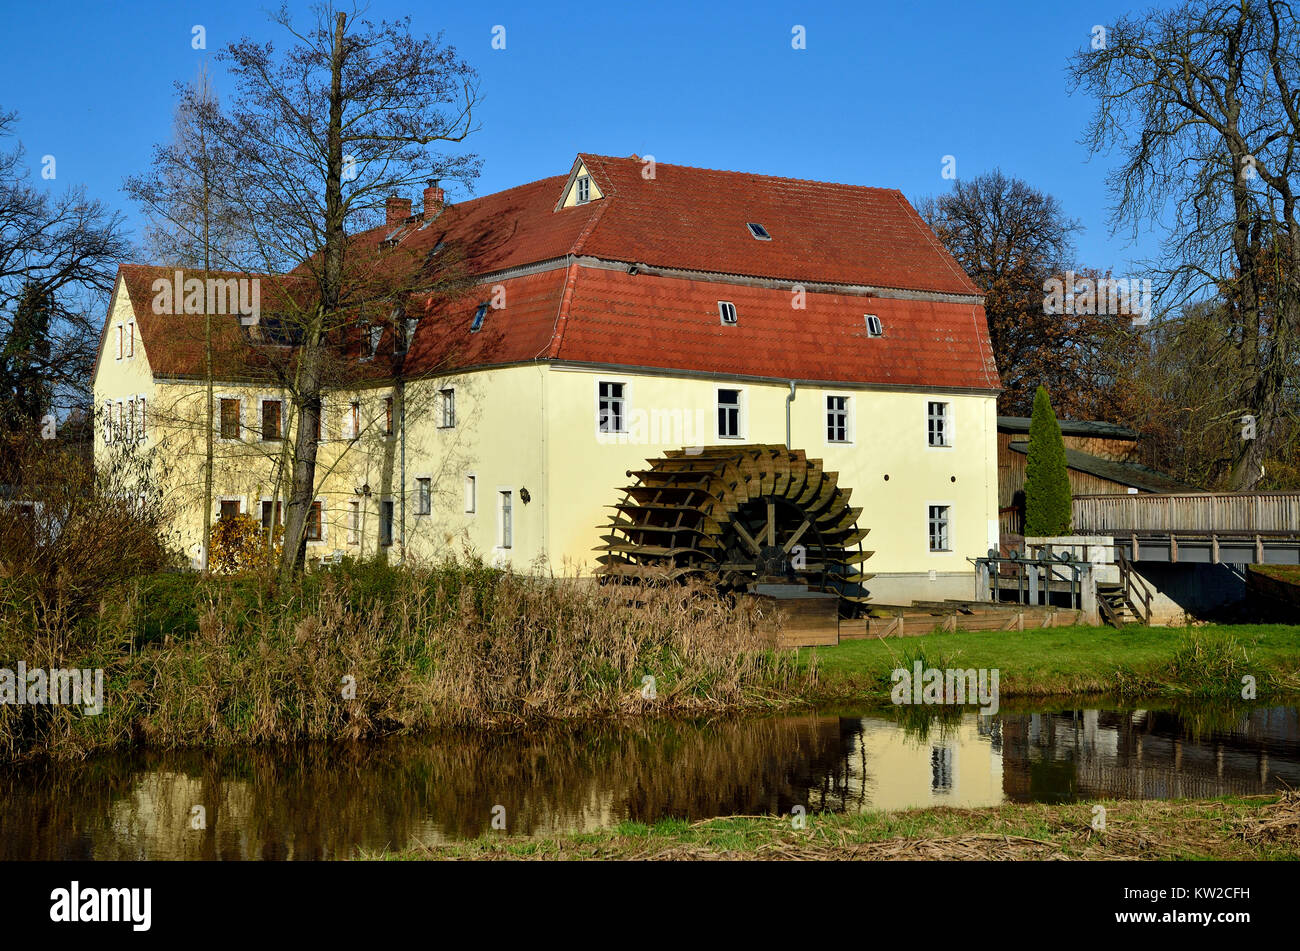 Magpie's mill Plessa, technical Denkmnal magpie's mill in Plessa, Elstermühle Plessa, Technisches Denkmnal - Stock Image